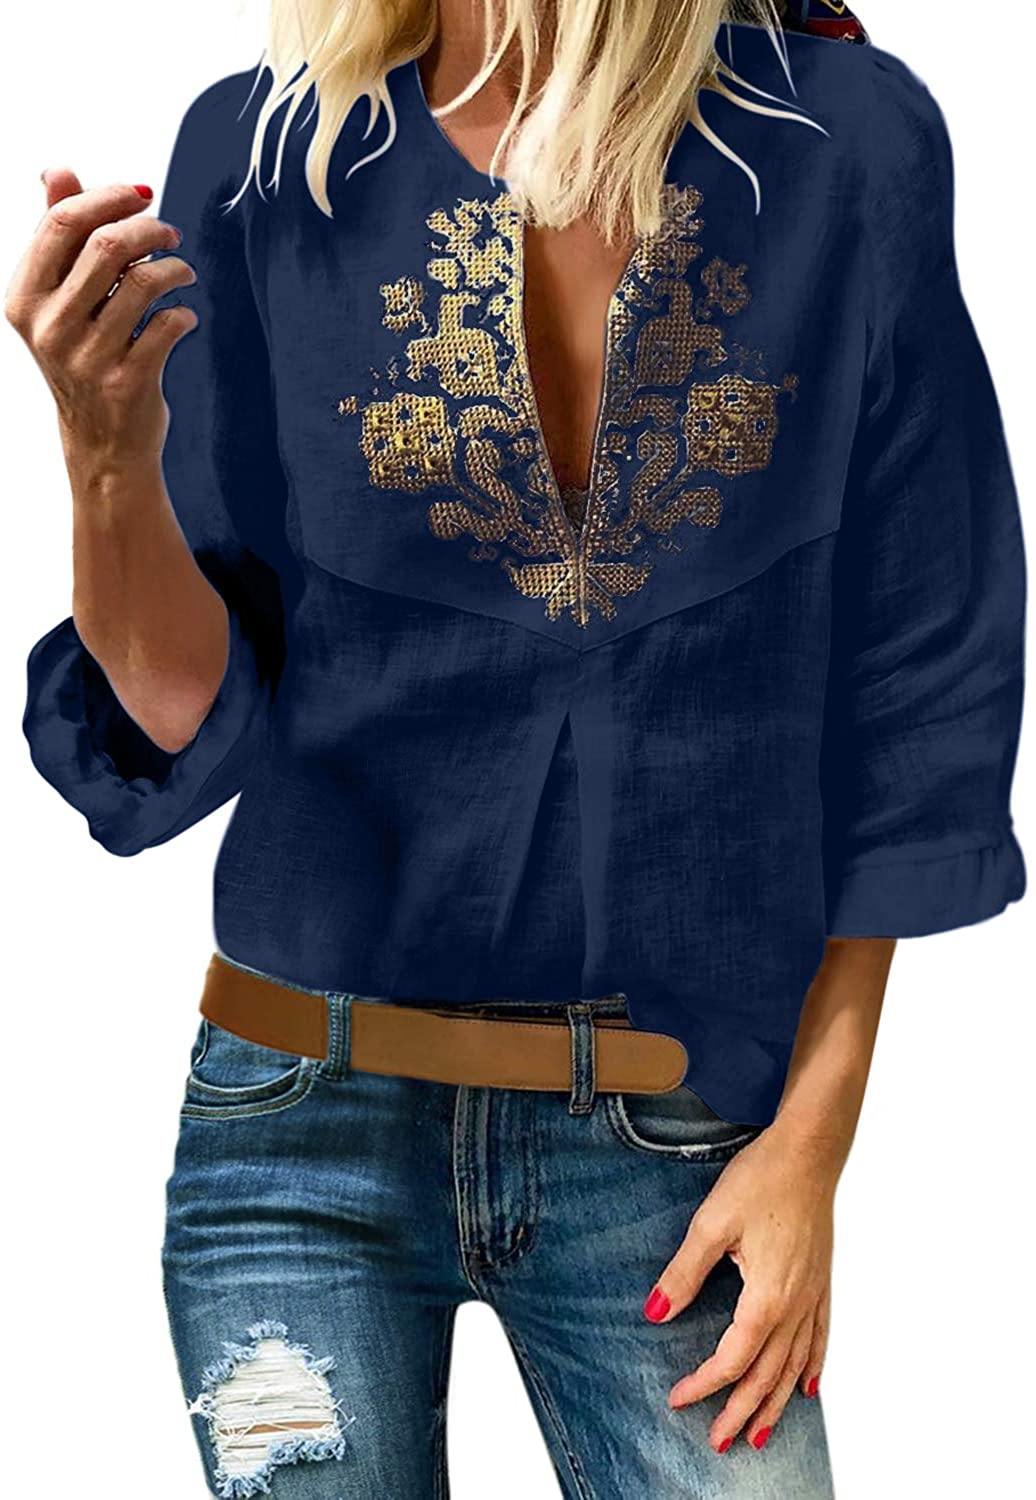 Aleumdr Womens Fashion Boho Embroidered V Neck Long Sleeve Blouses Casual Tunic Tops Blue X-Large 16 18